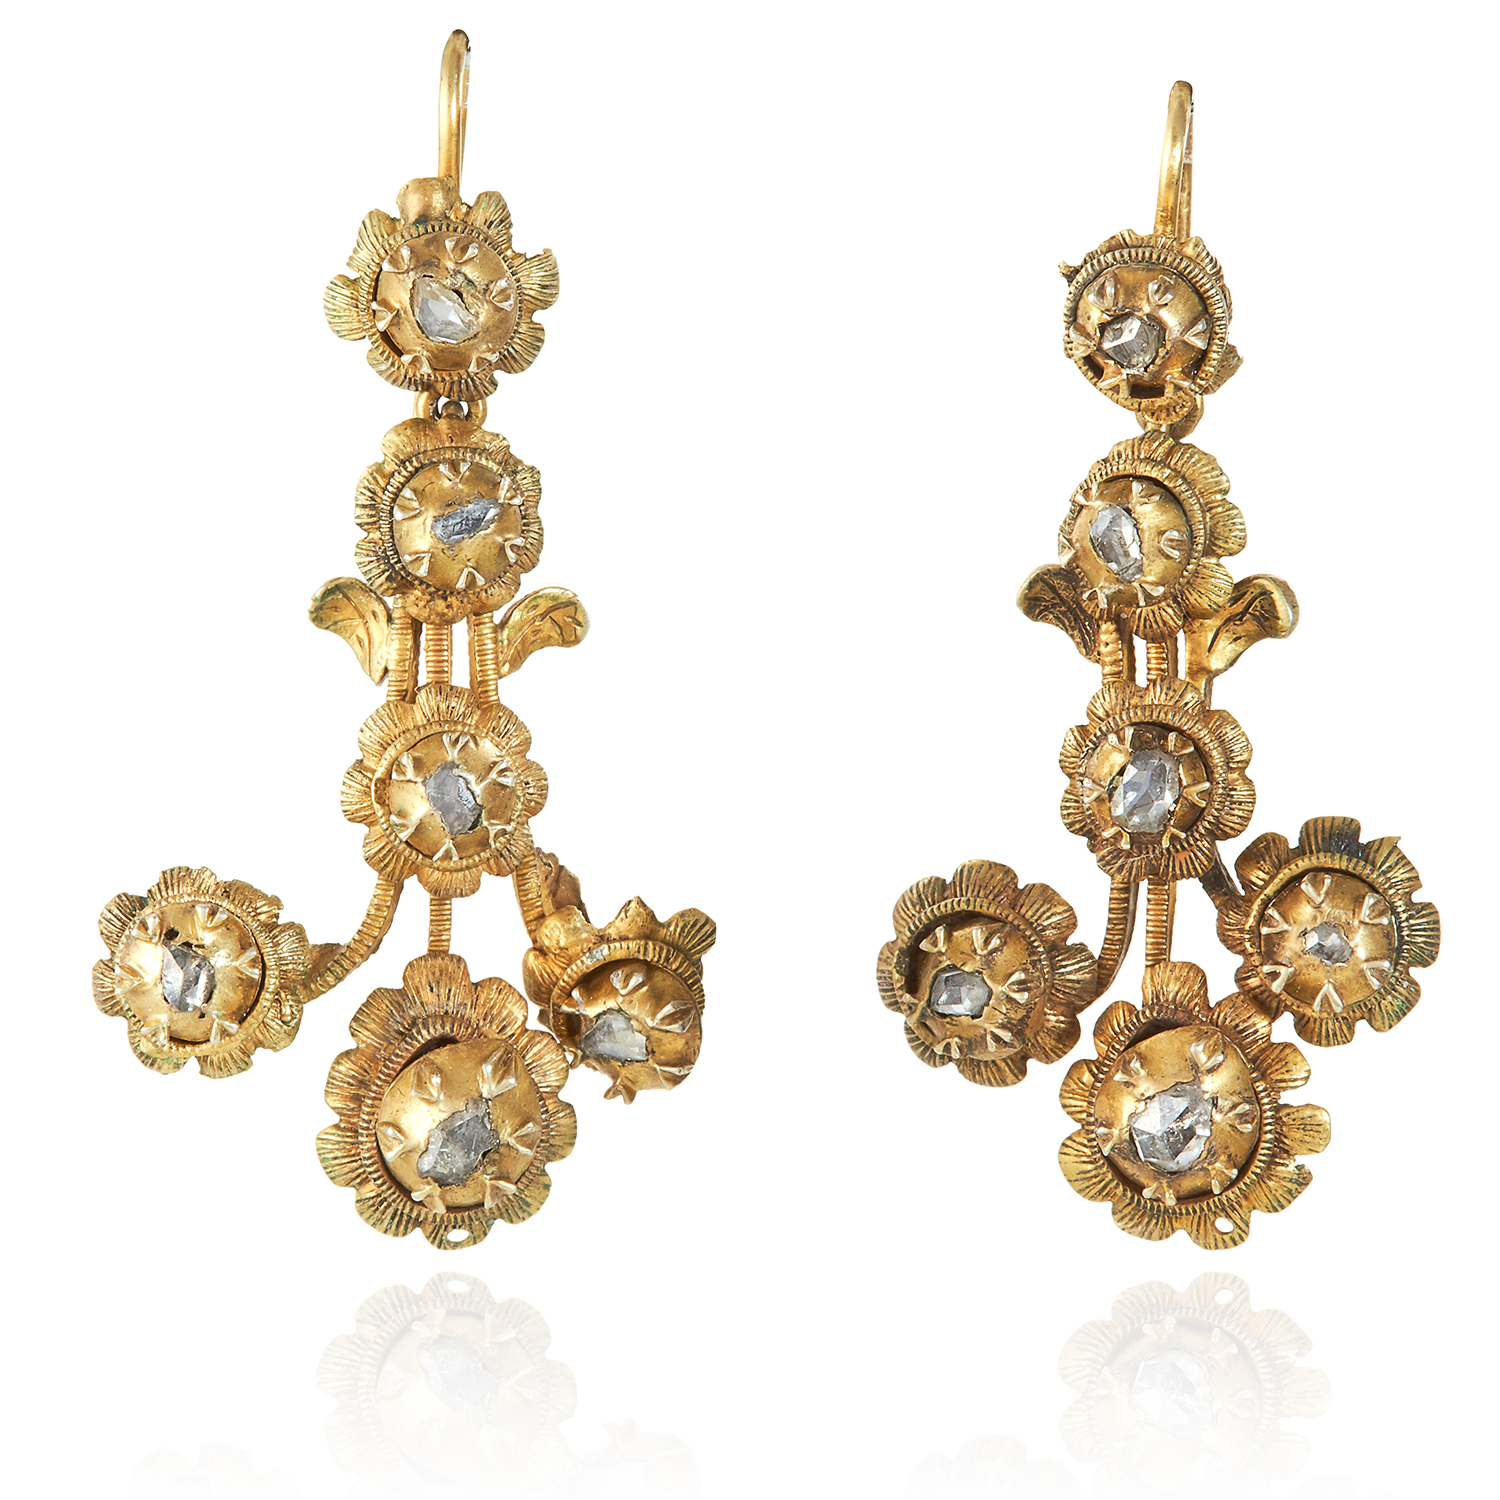 Los 356 - A PAIR OF ANTIQUE DIAMOND EARRINGS, 19TH CENTURY in high carat yellow gold, the fleur-de-lys style